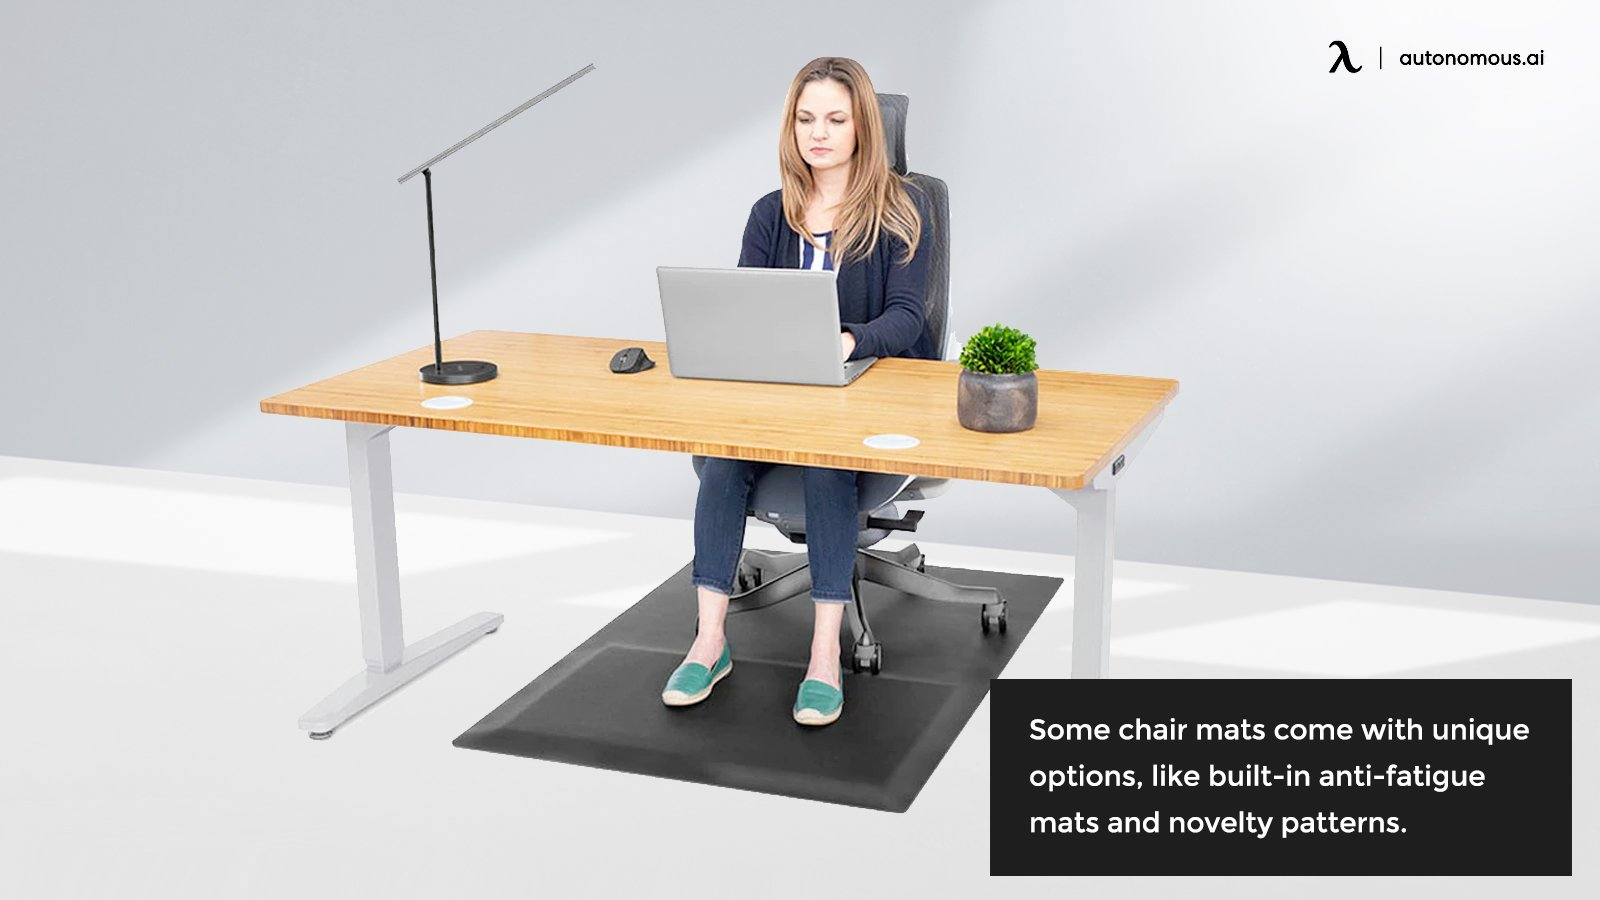 Unique chair mats and features